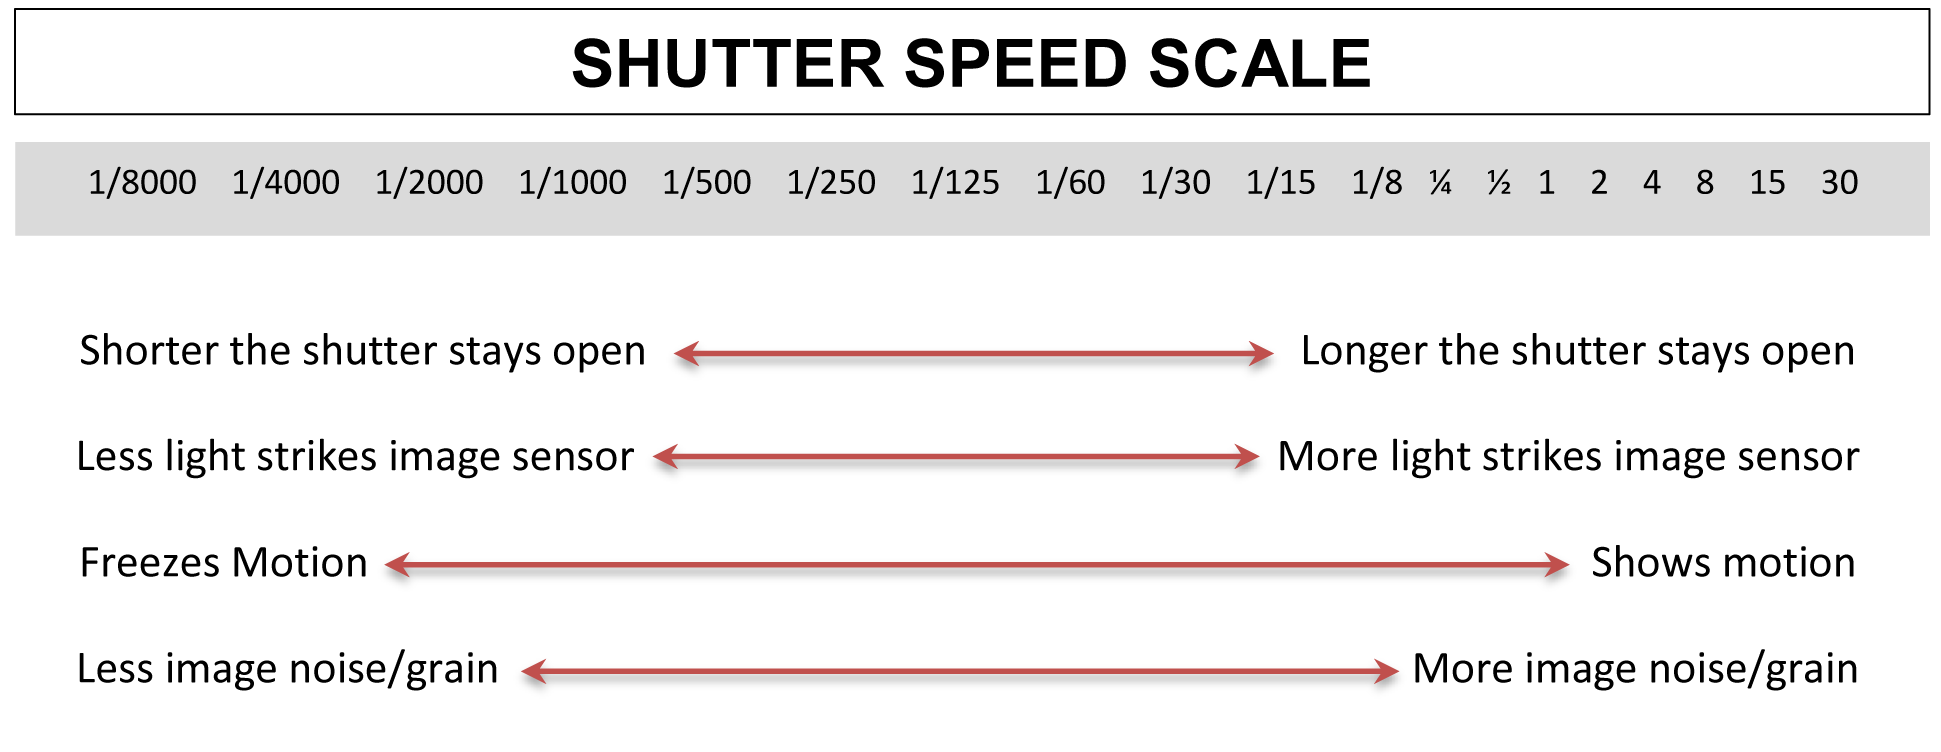 Image result for shutter speed scale